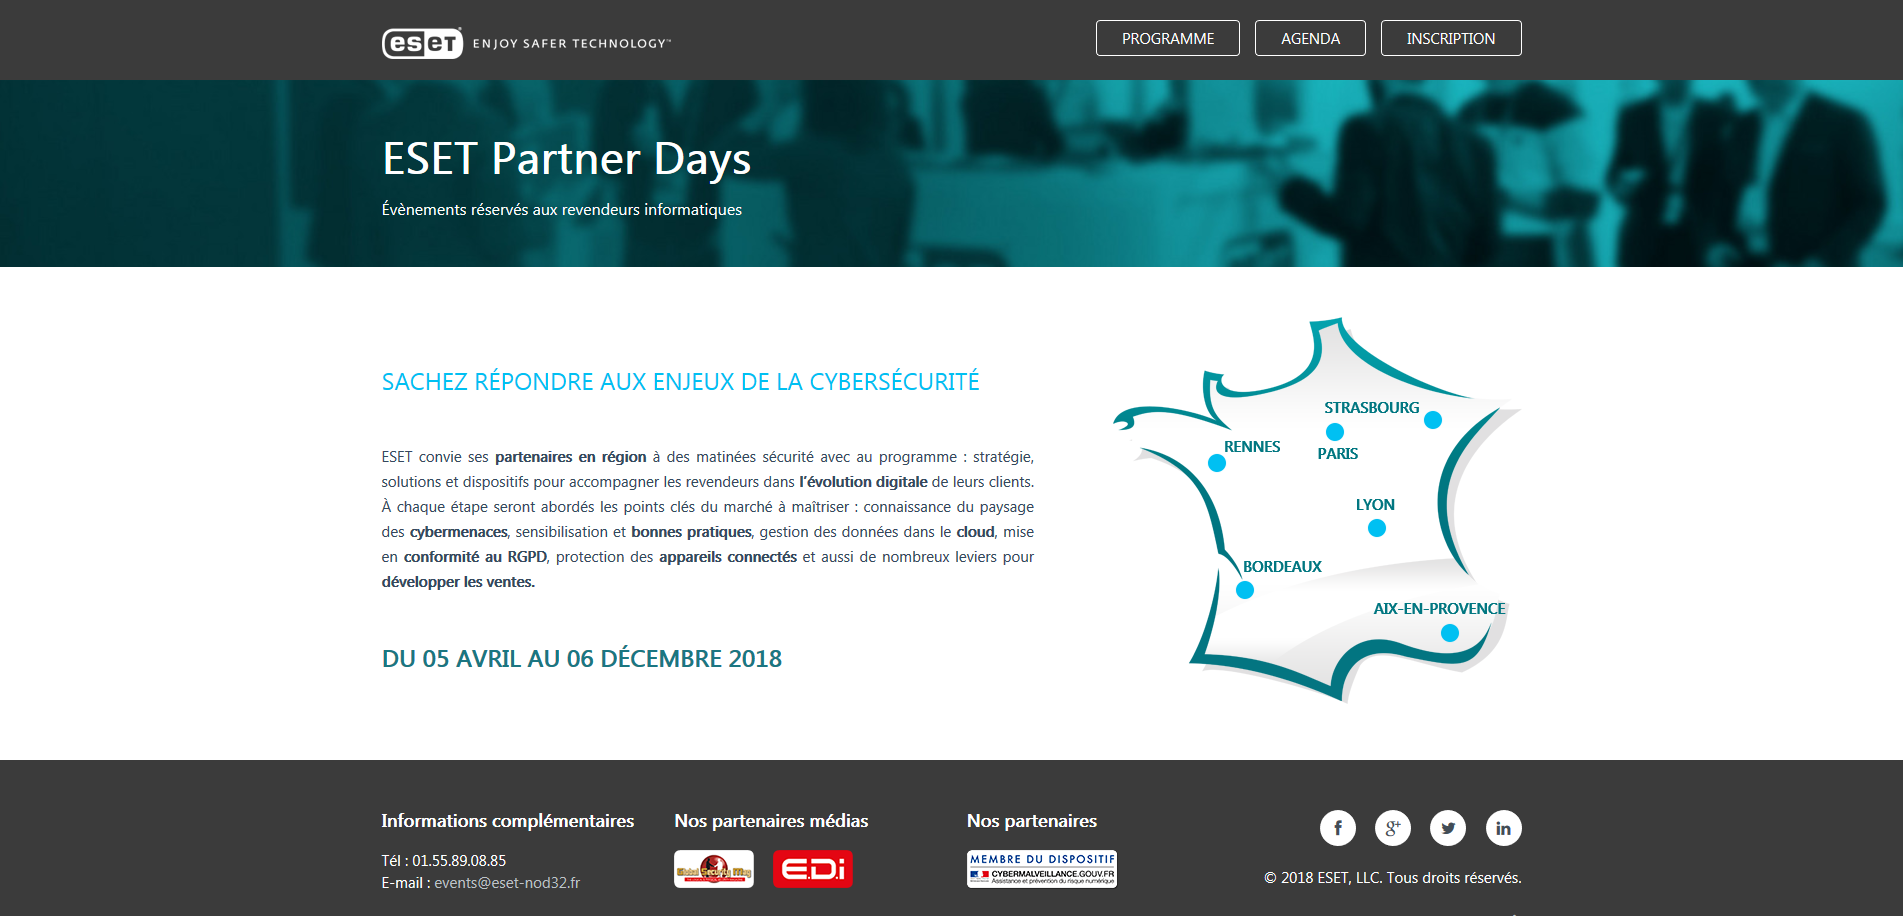 ESET Partner Days à Paris 2018